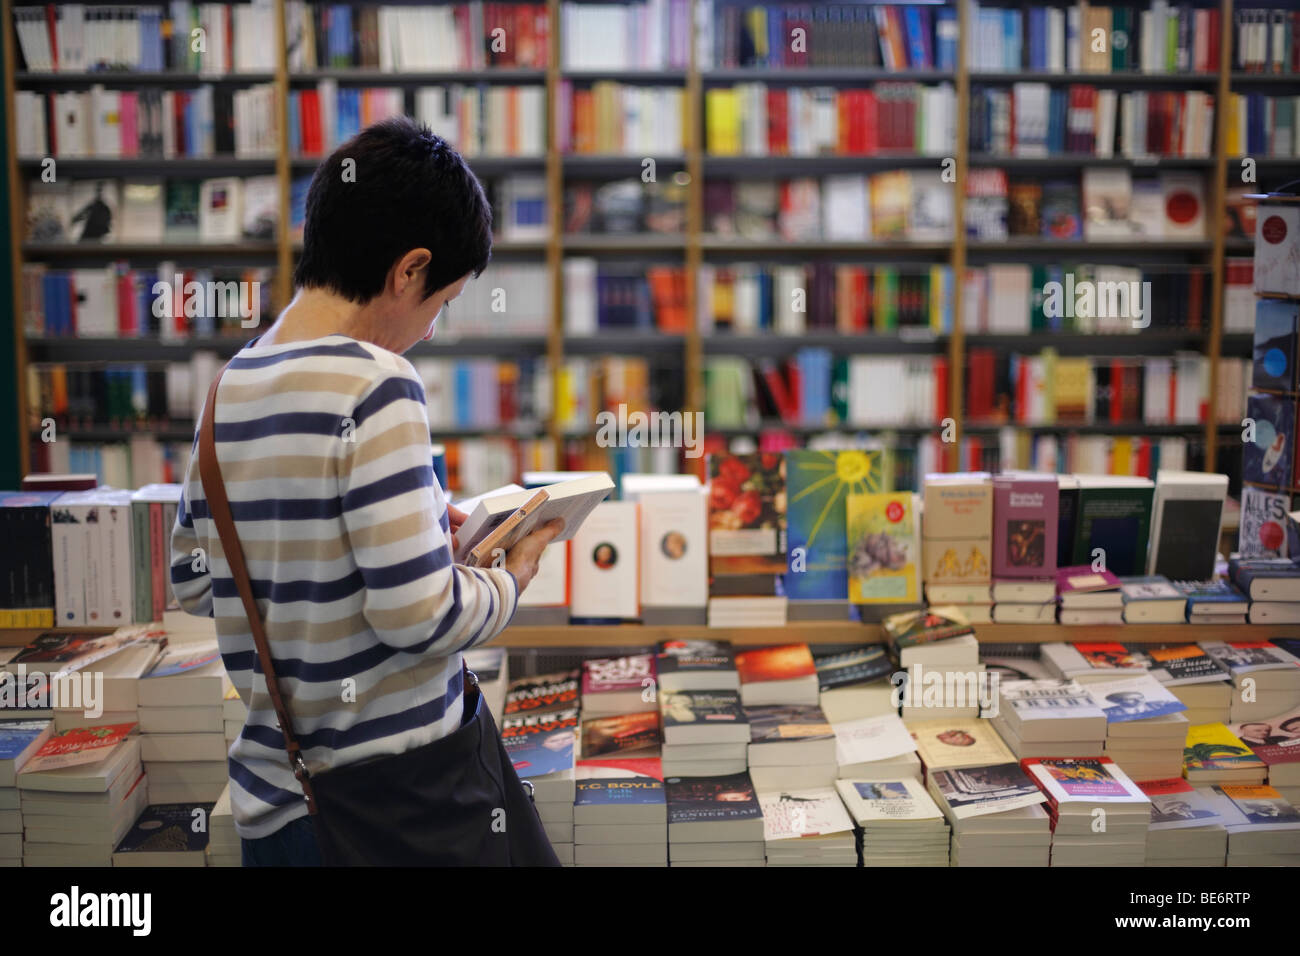 woman reading in books in a bookstore - Stock Image